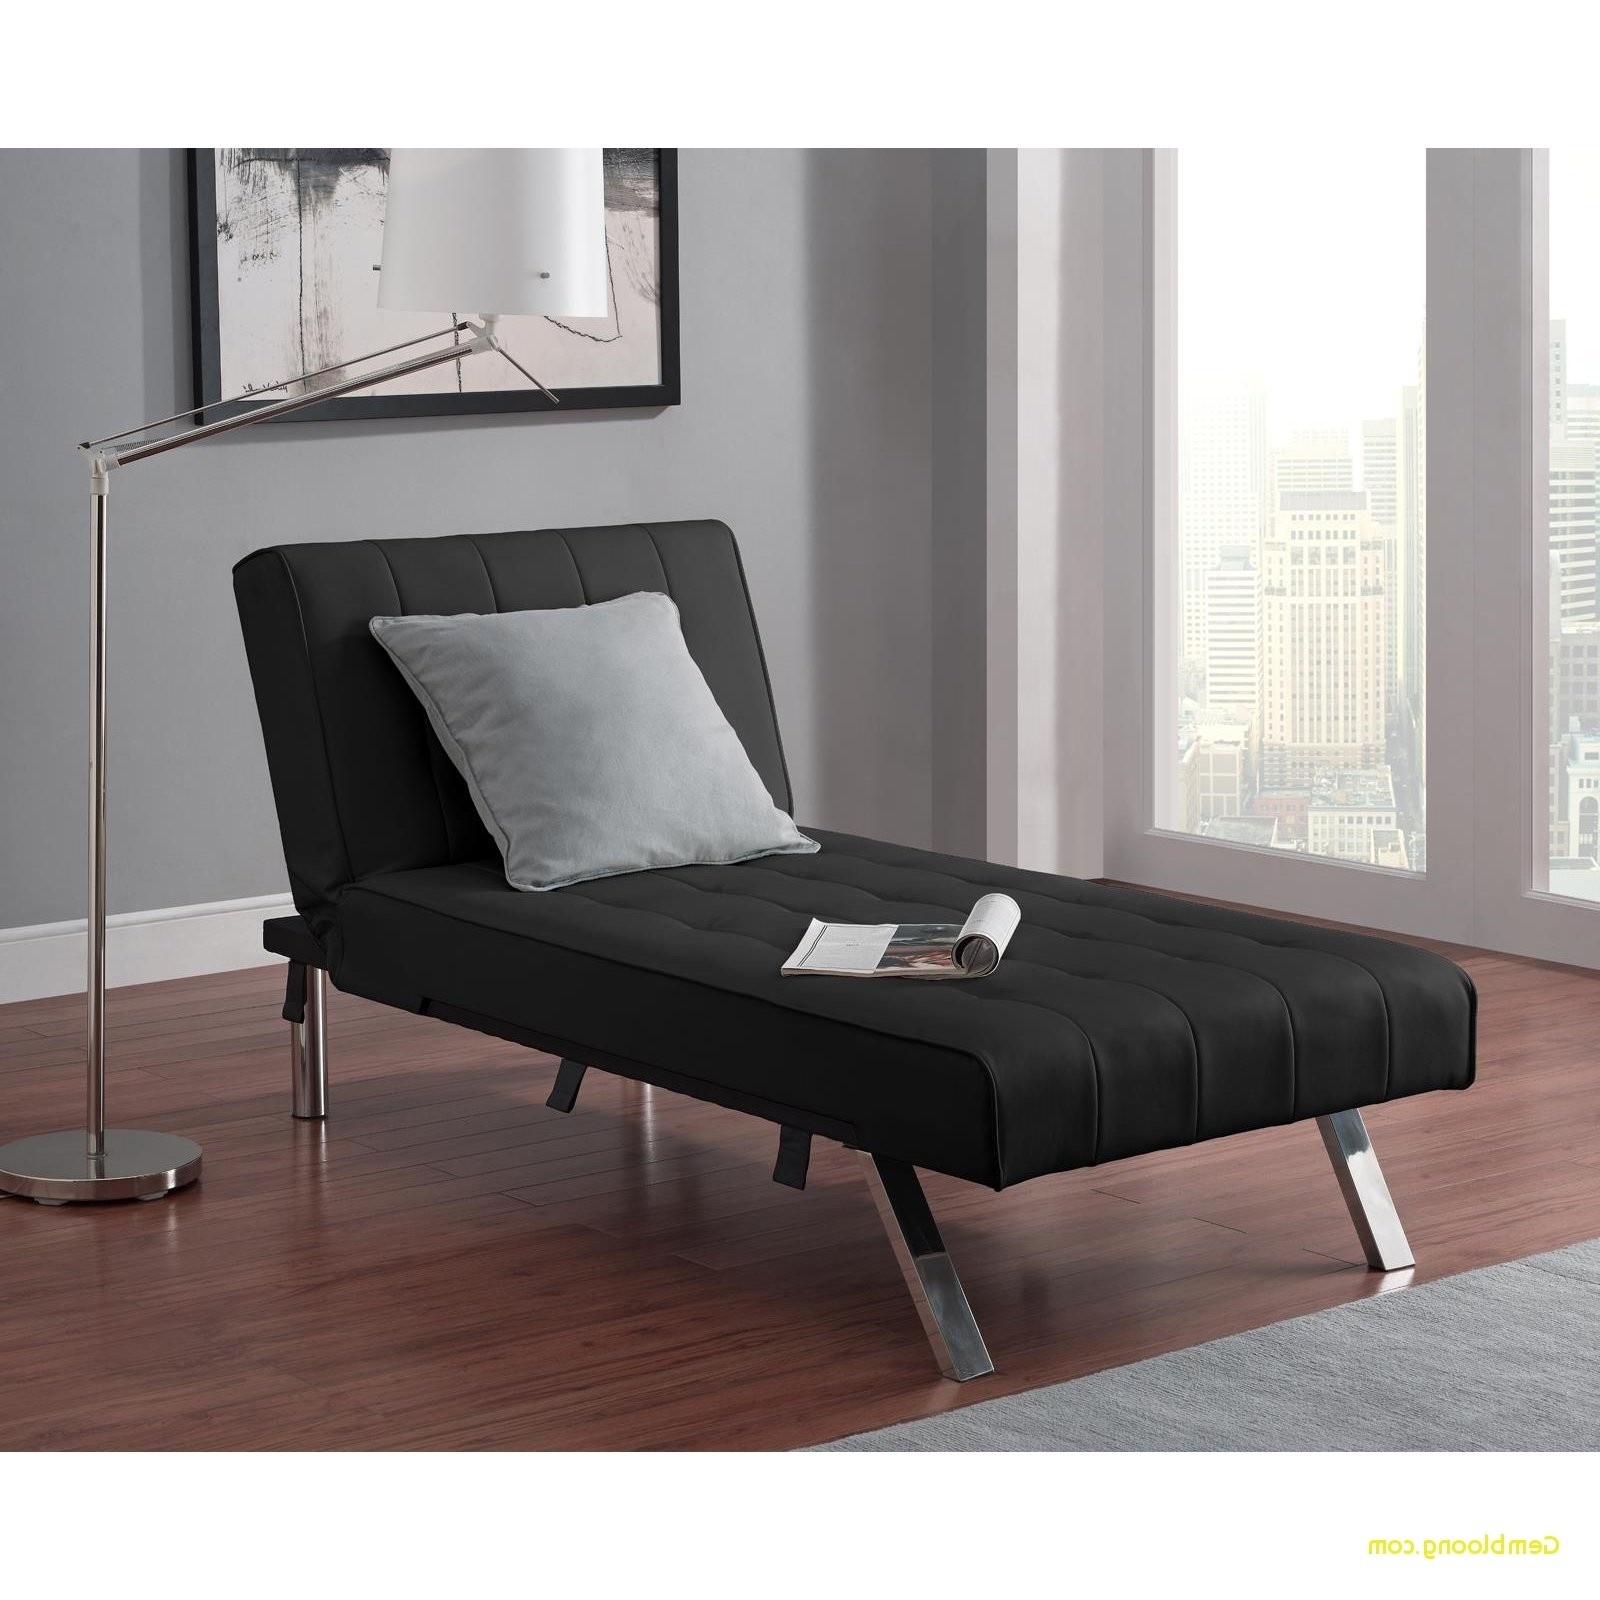 Chaise Lounge Chairs Under $200 Regarding Famous Chaise Lounge Under $200 New Ink Ivy Clark Lounge – Home Interior (View 3 of 15)